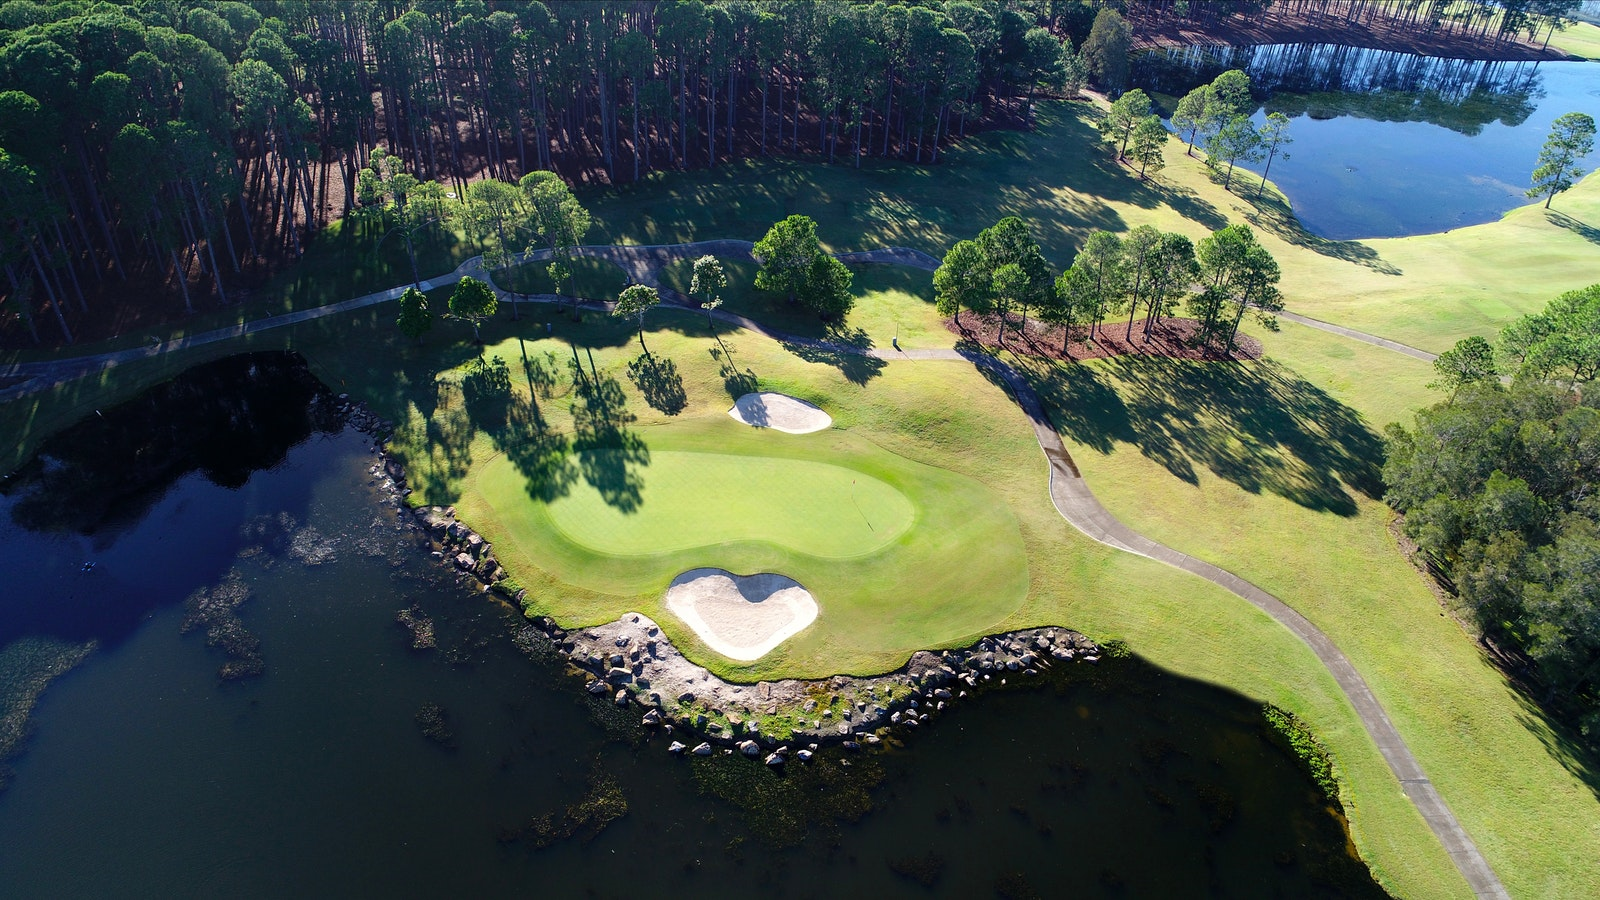 The Pines golf course, hole 7